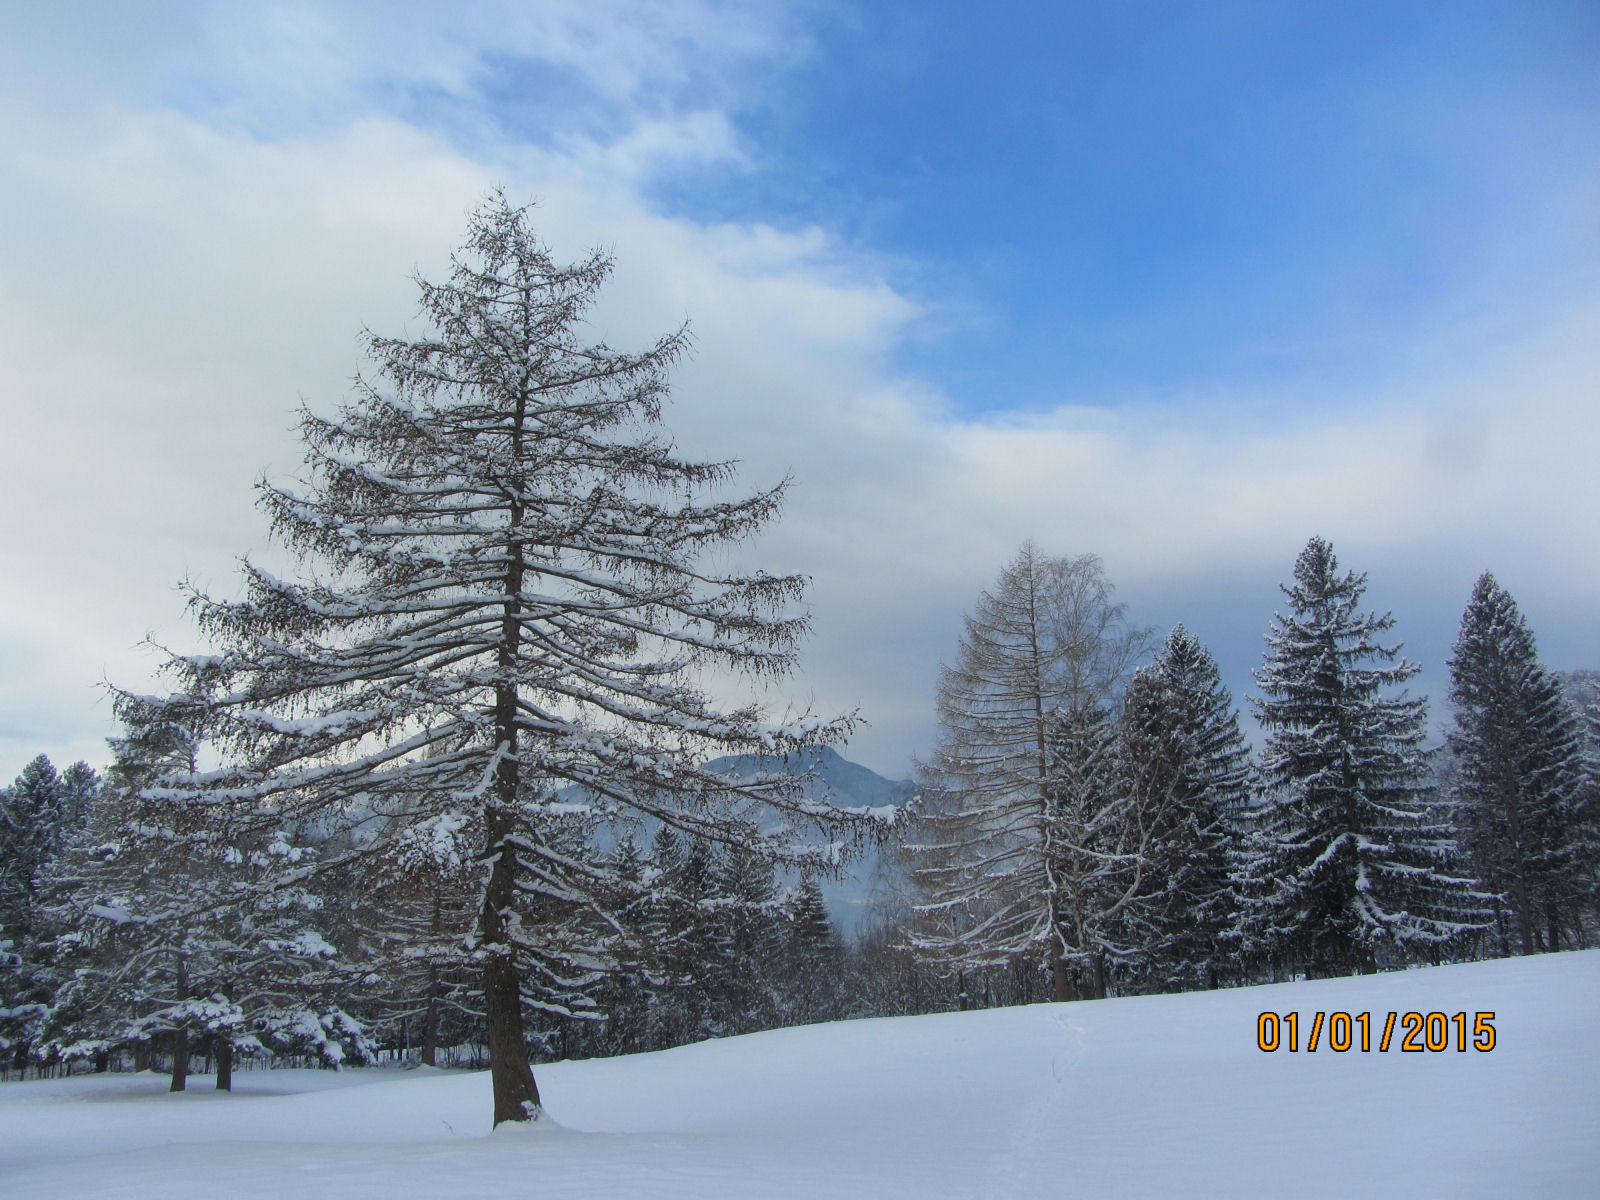 Snow in winter in Gorenjska in Slovenia